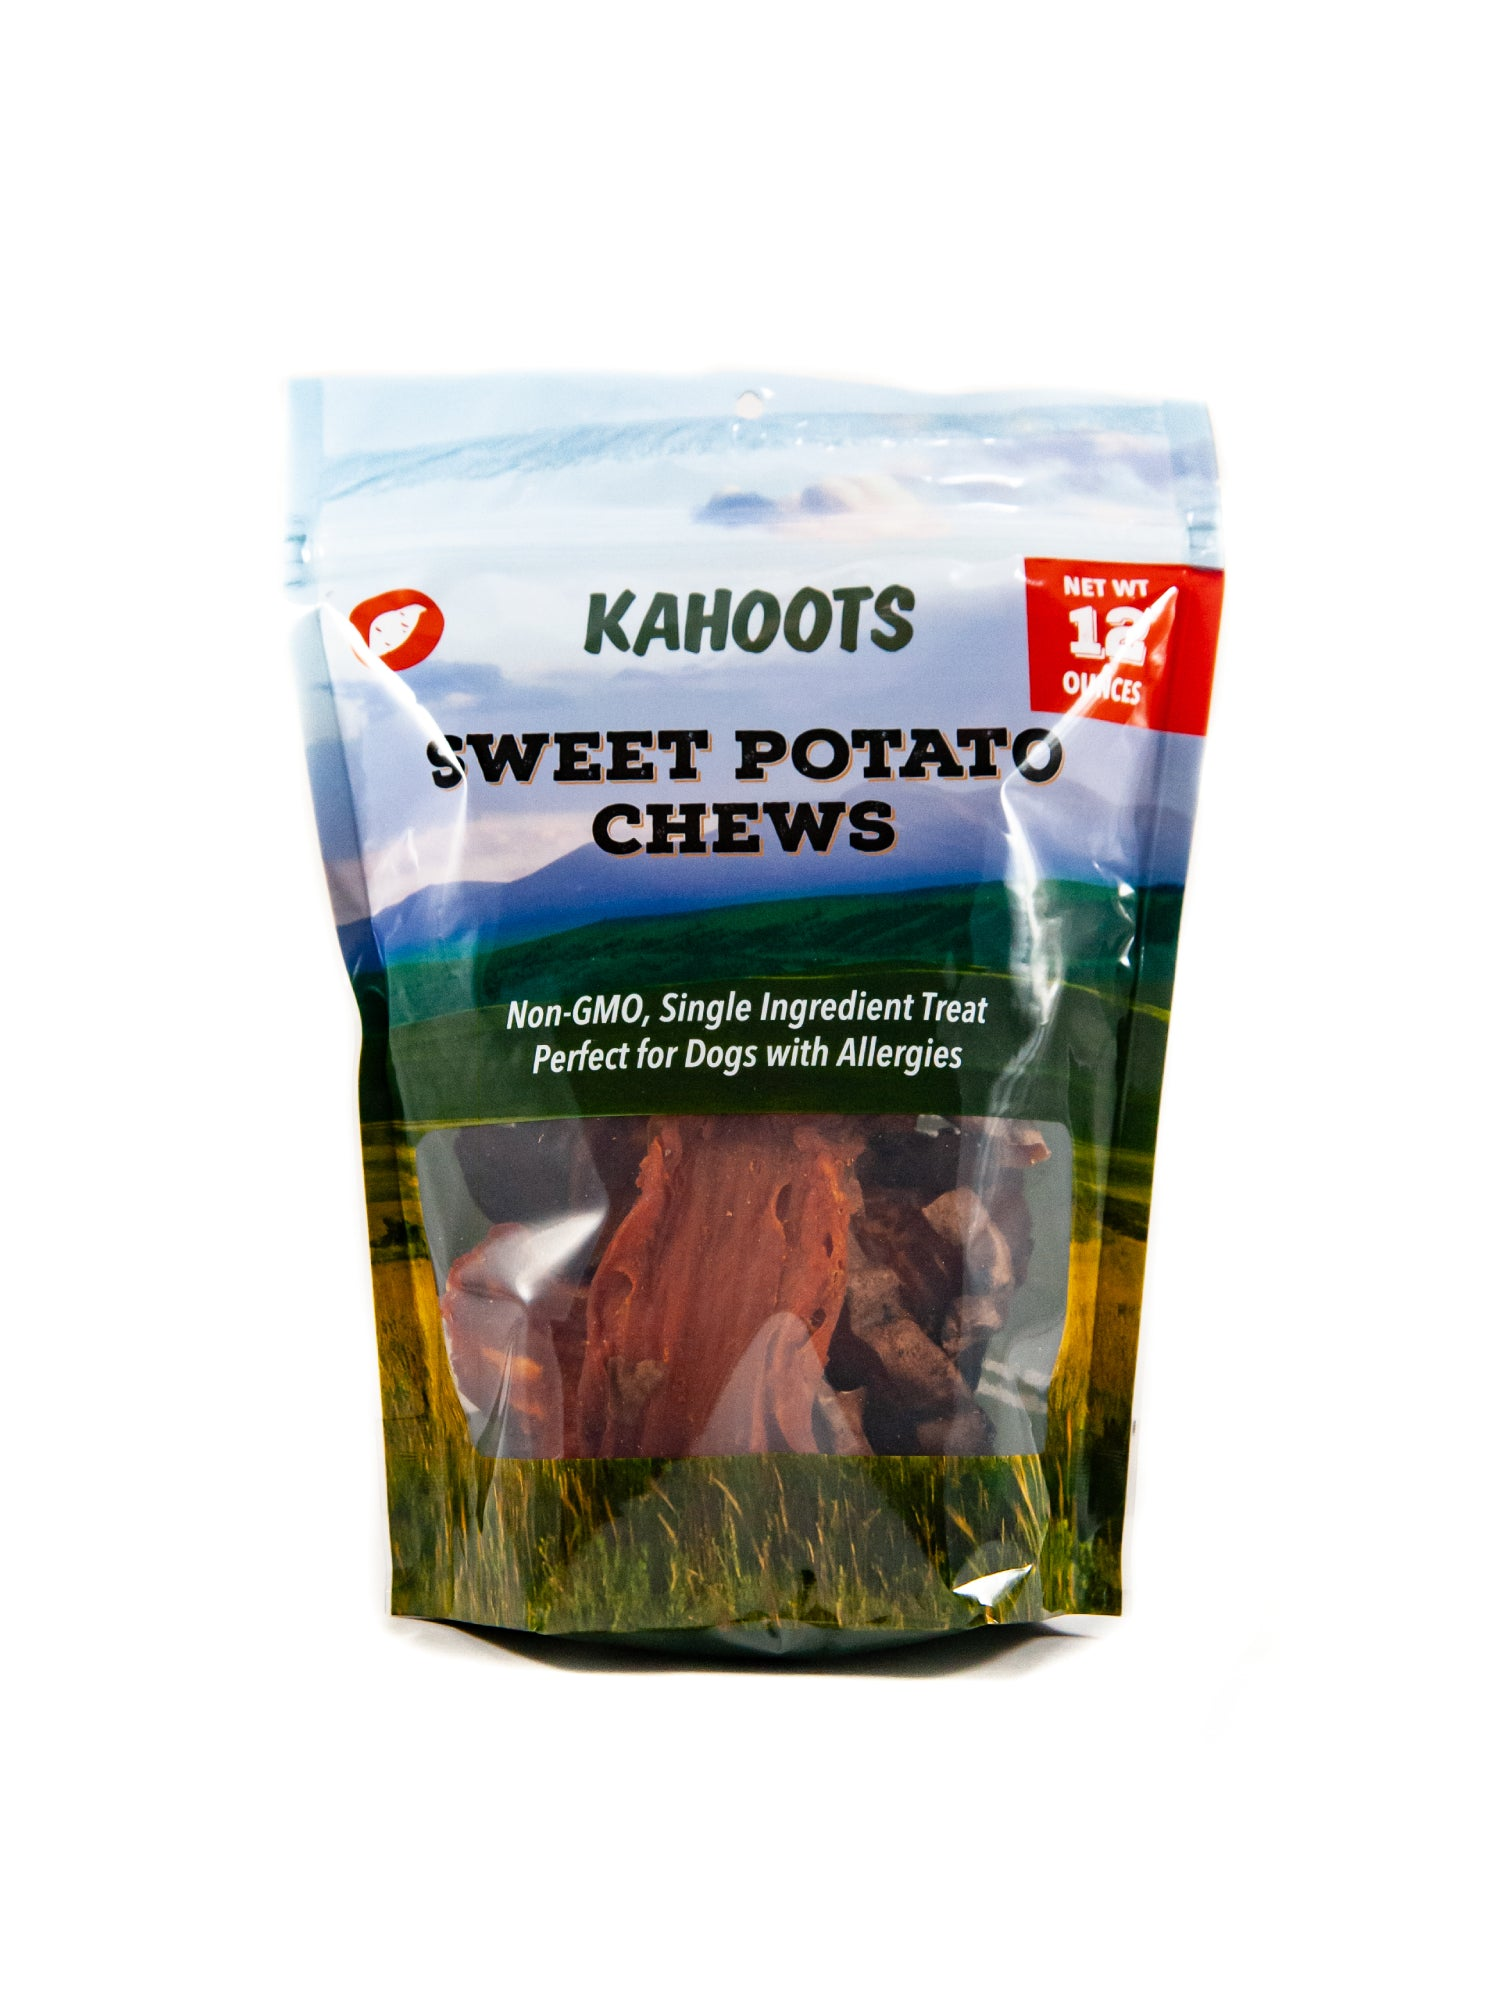 Sweet potato chews in a bag